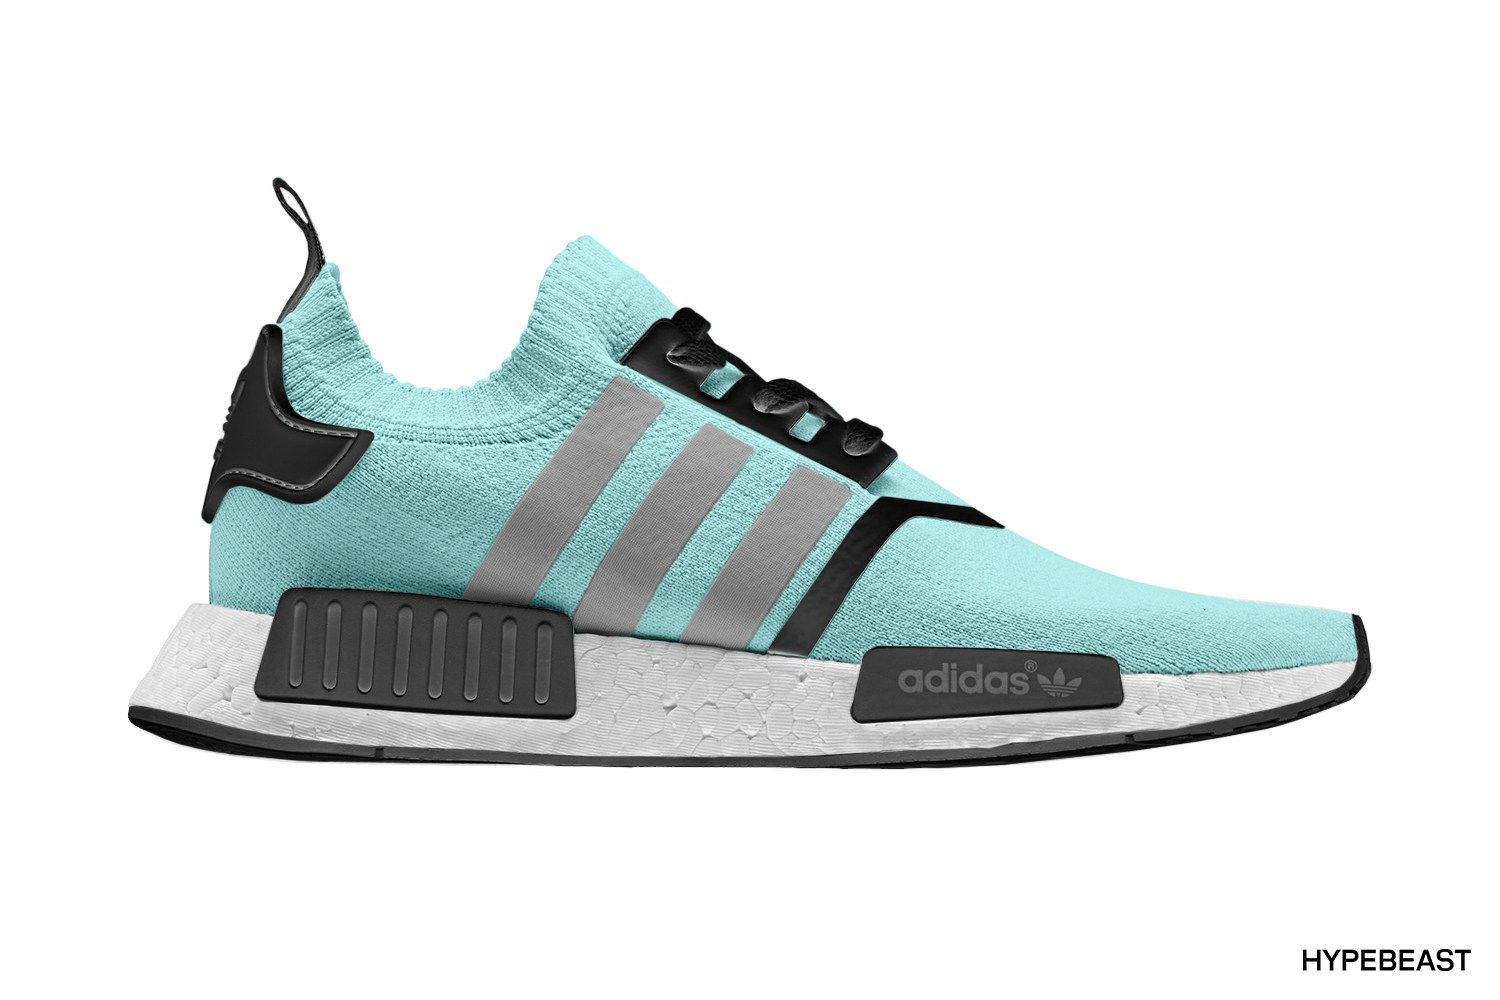 8 adidas nmd collaboration concepts we want actualized nmd